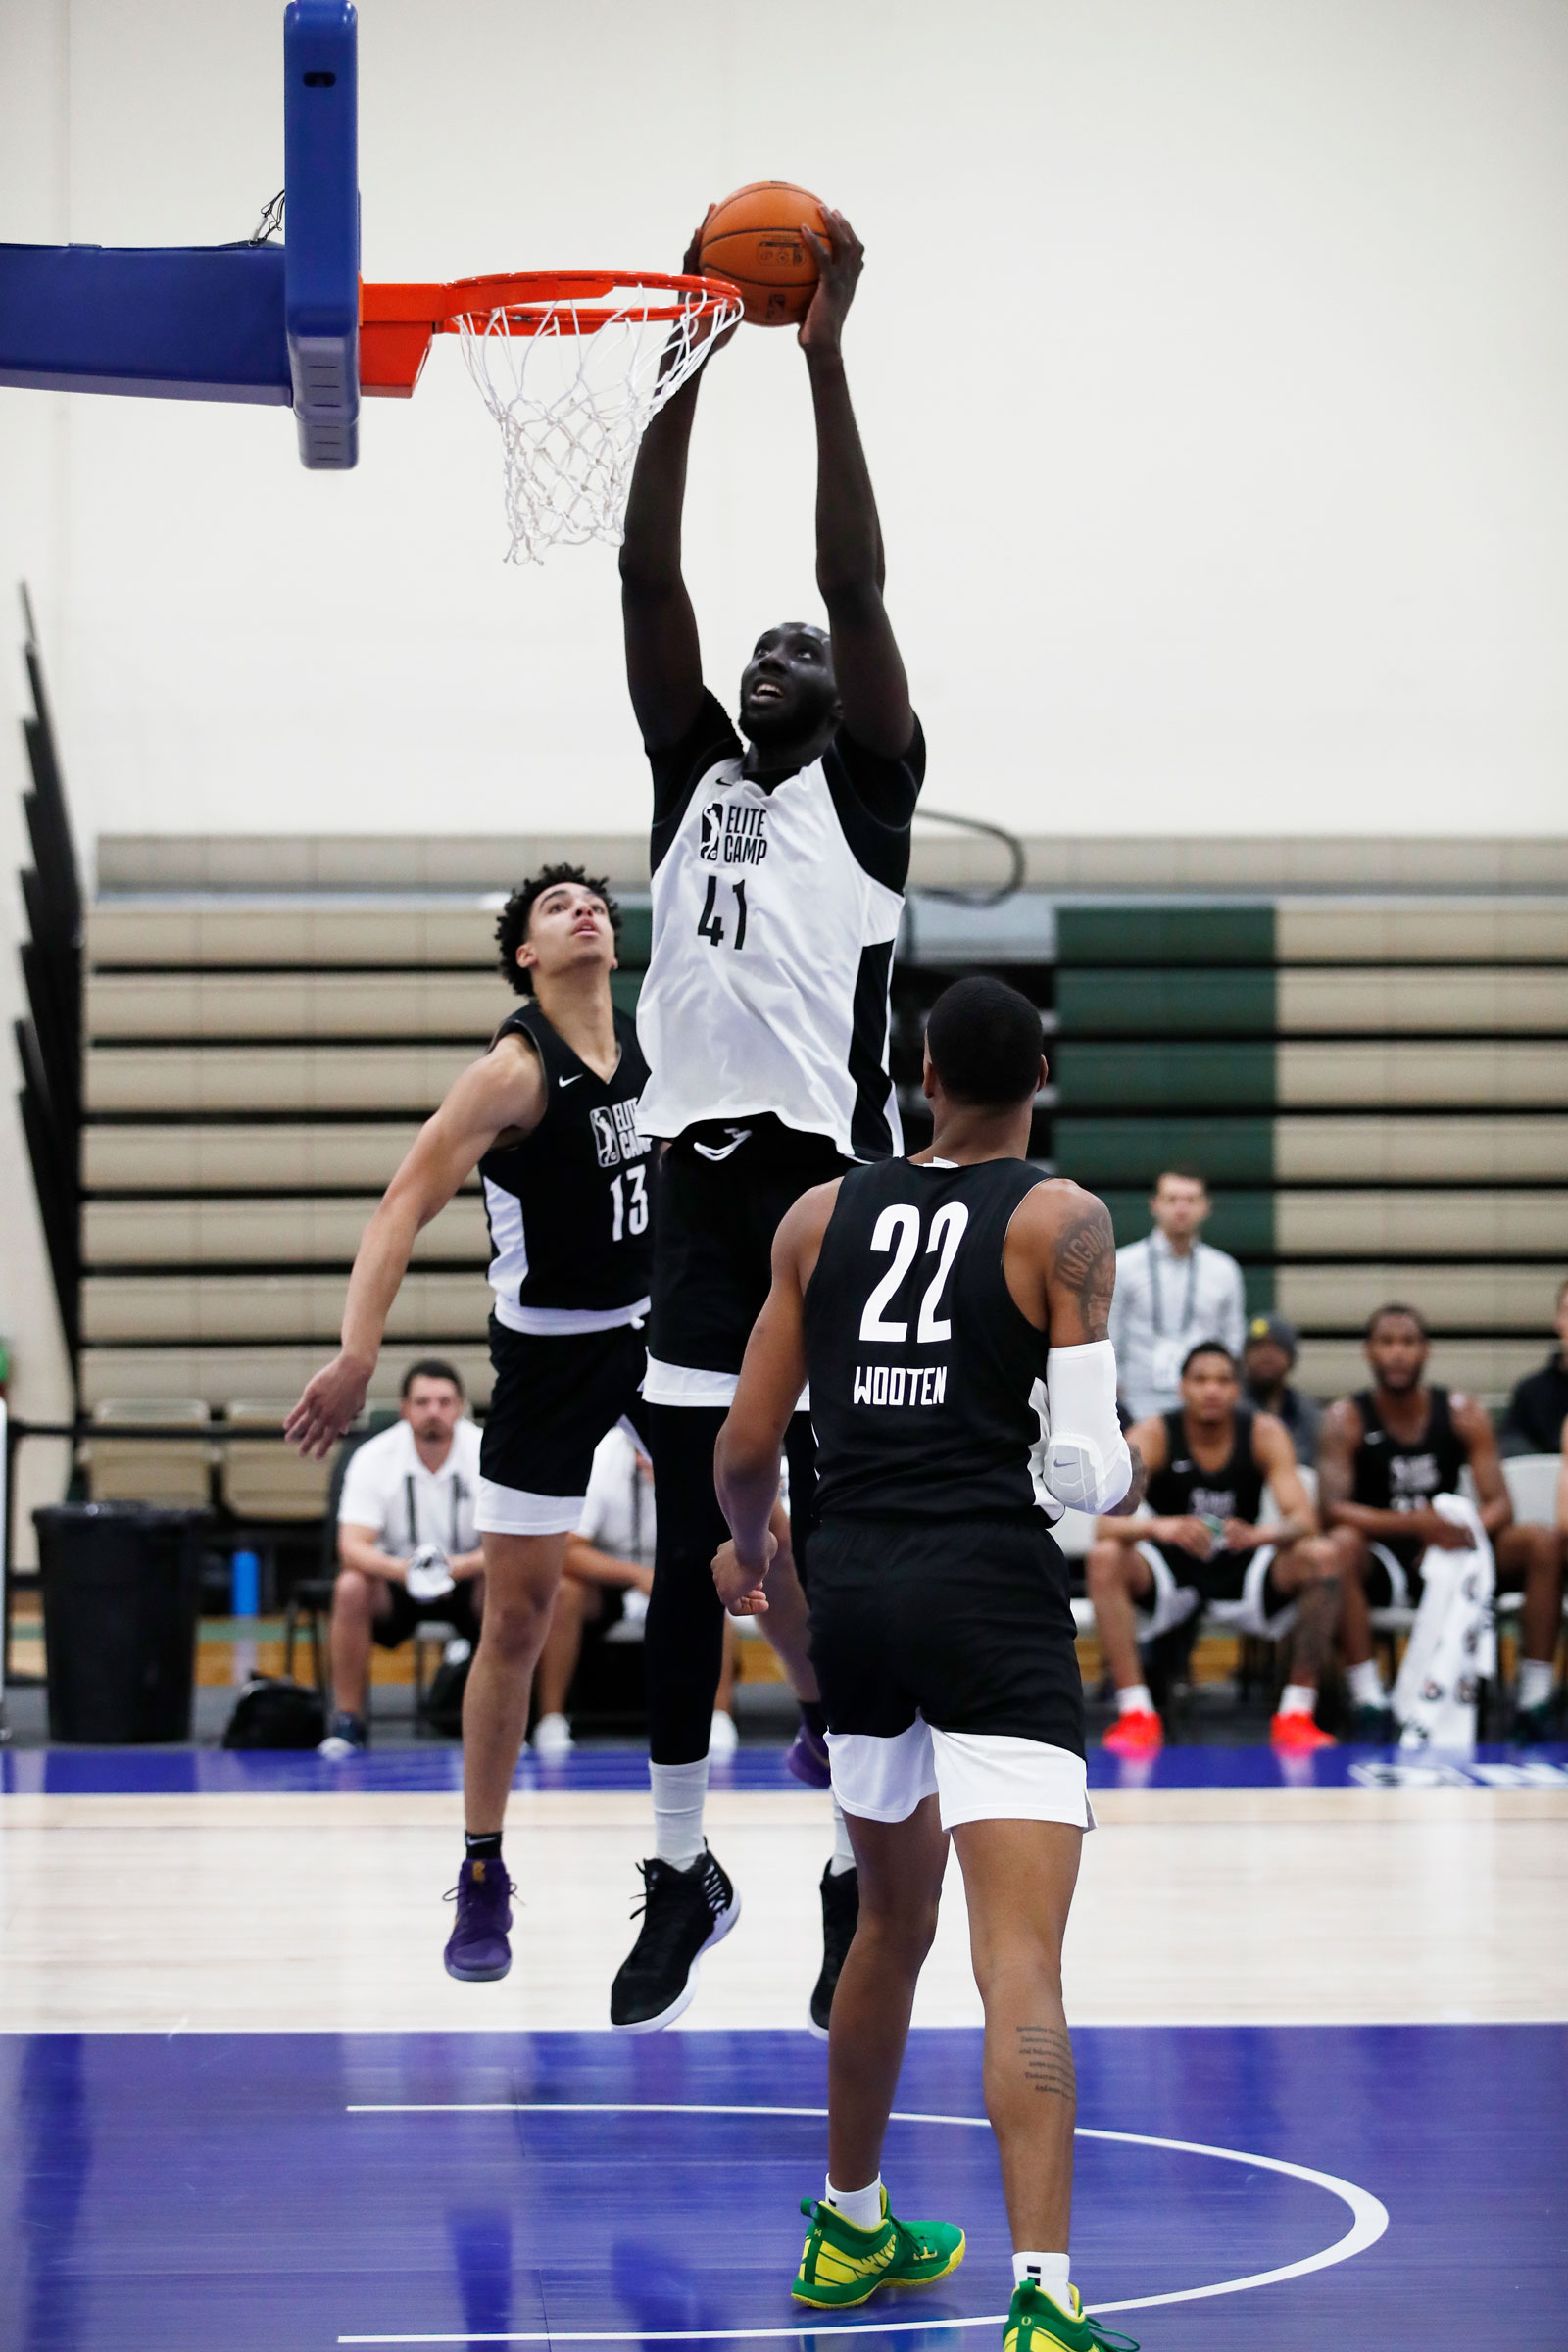 Tacko Fall #41 dunks the ball during Day Two of the G League Elite Camp at the Quest Multisport sports training facility on May 13, 2019 in Chicago, Illinois.